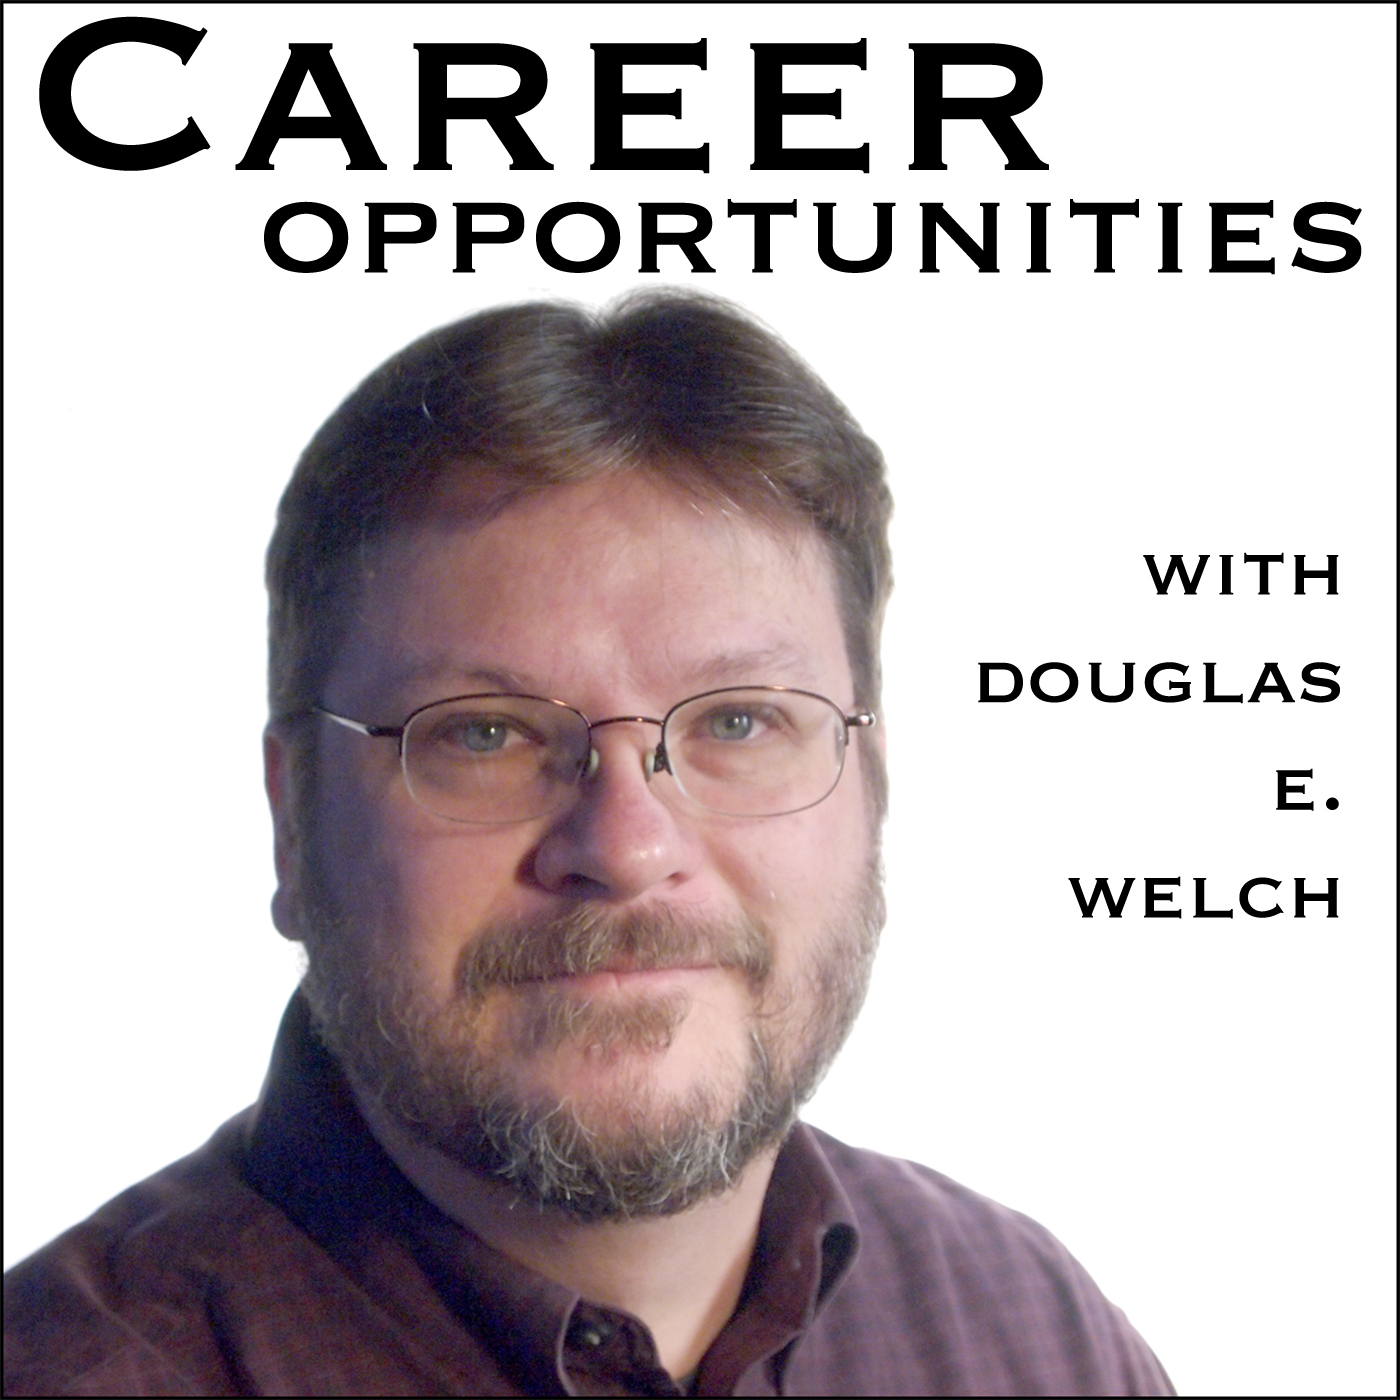 Career Opportunities with Douglas E. Welch